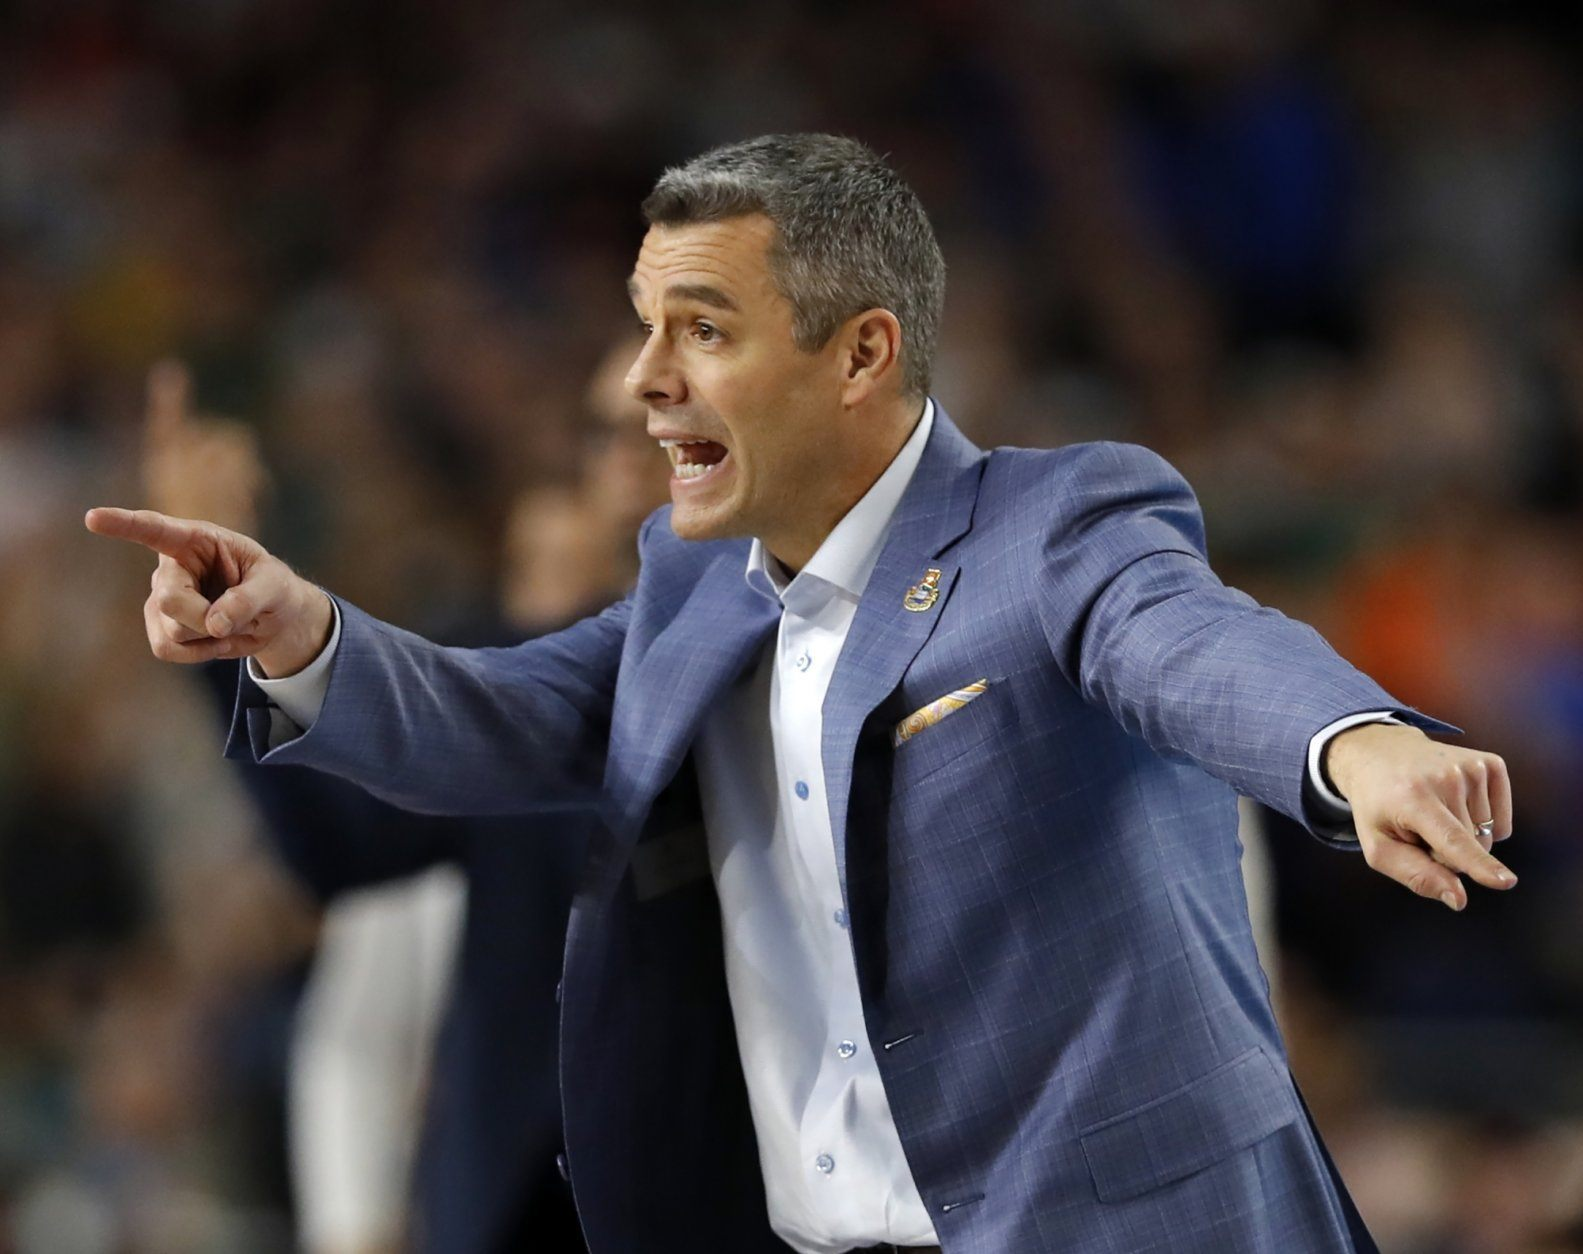 Virginia head coach Tony Bennett directs his team during the overtime in the championship of the Final Four NCAA college basketball tournament against Texas Tech, Monday, April 8, 2019, in Minneapolis. (AP Photo/Charlie Neibergall)